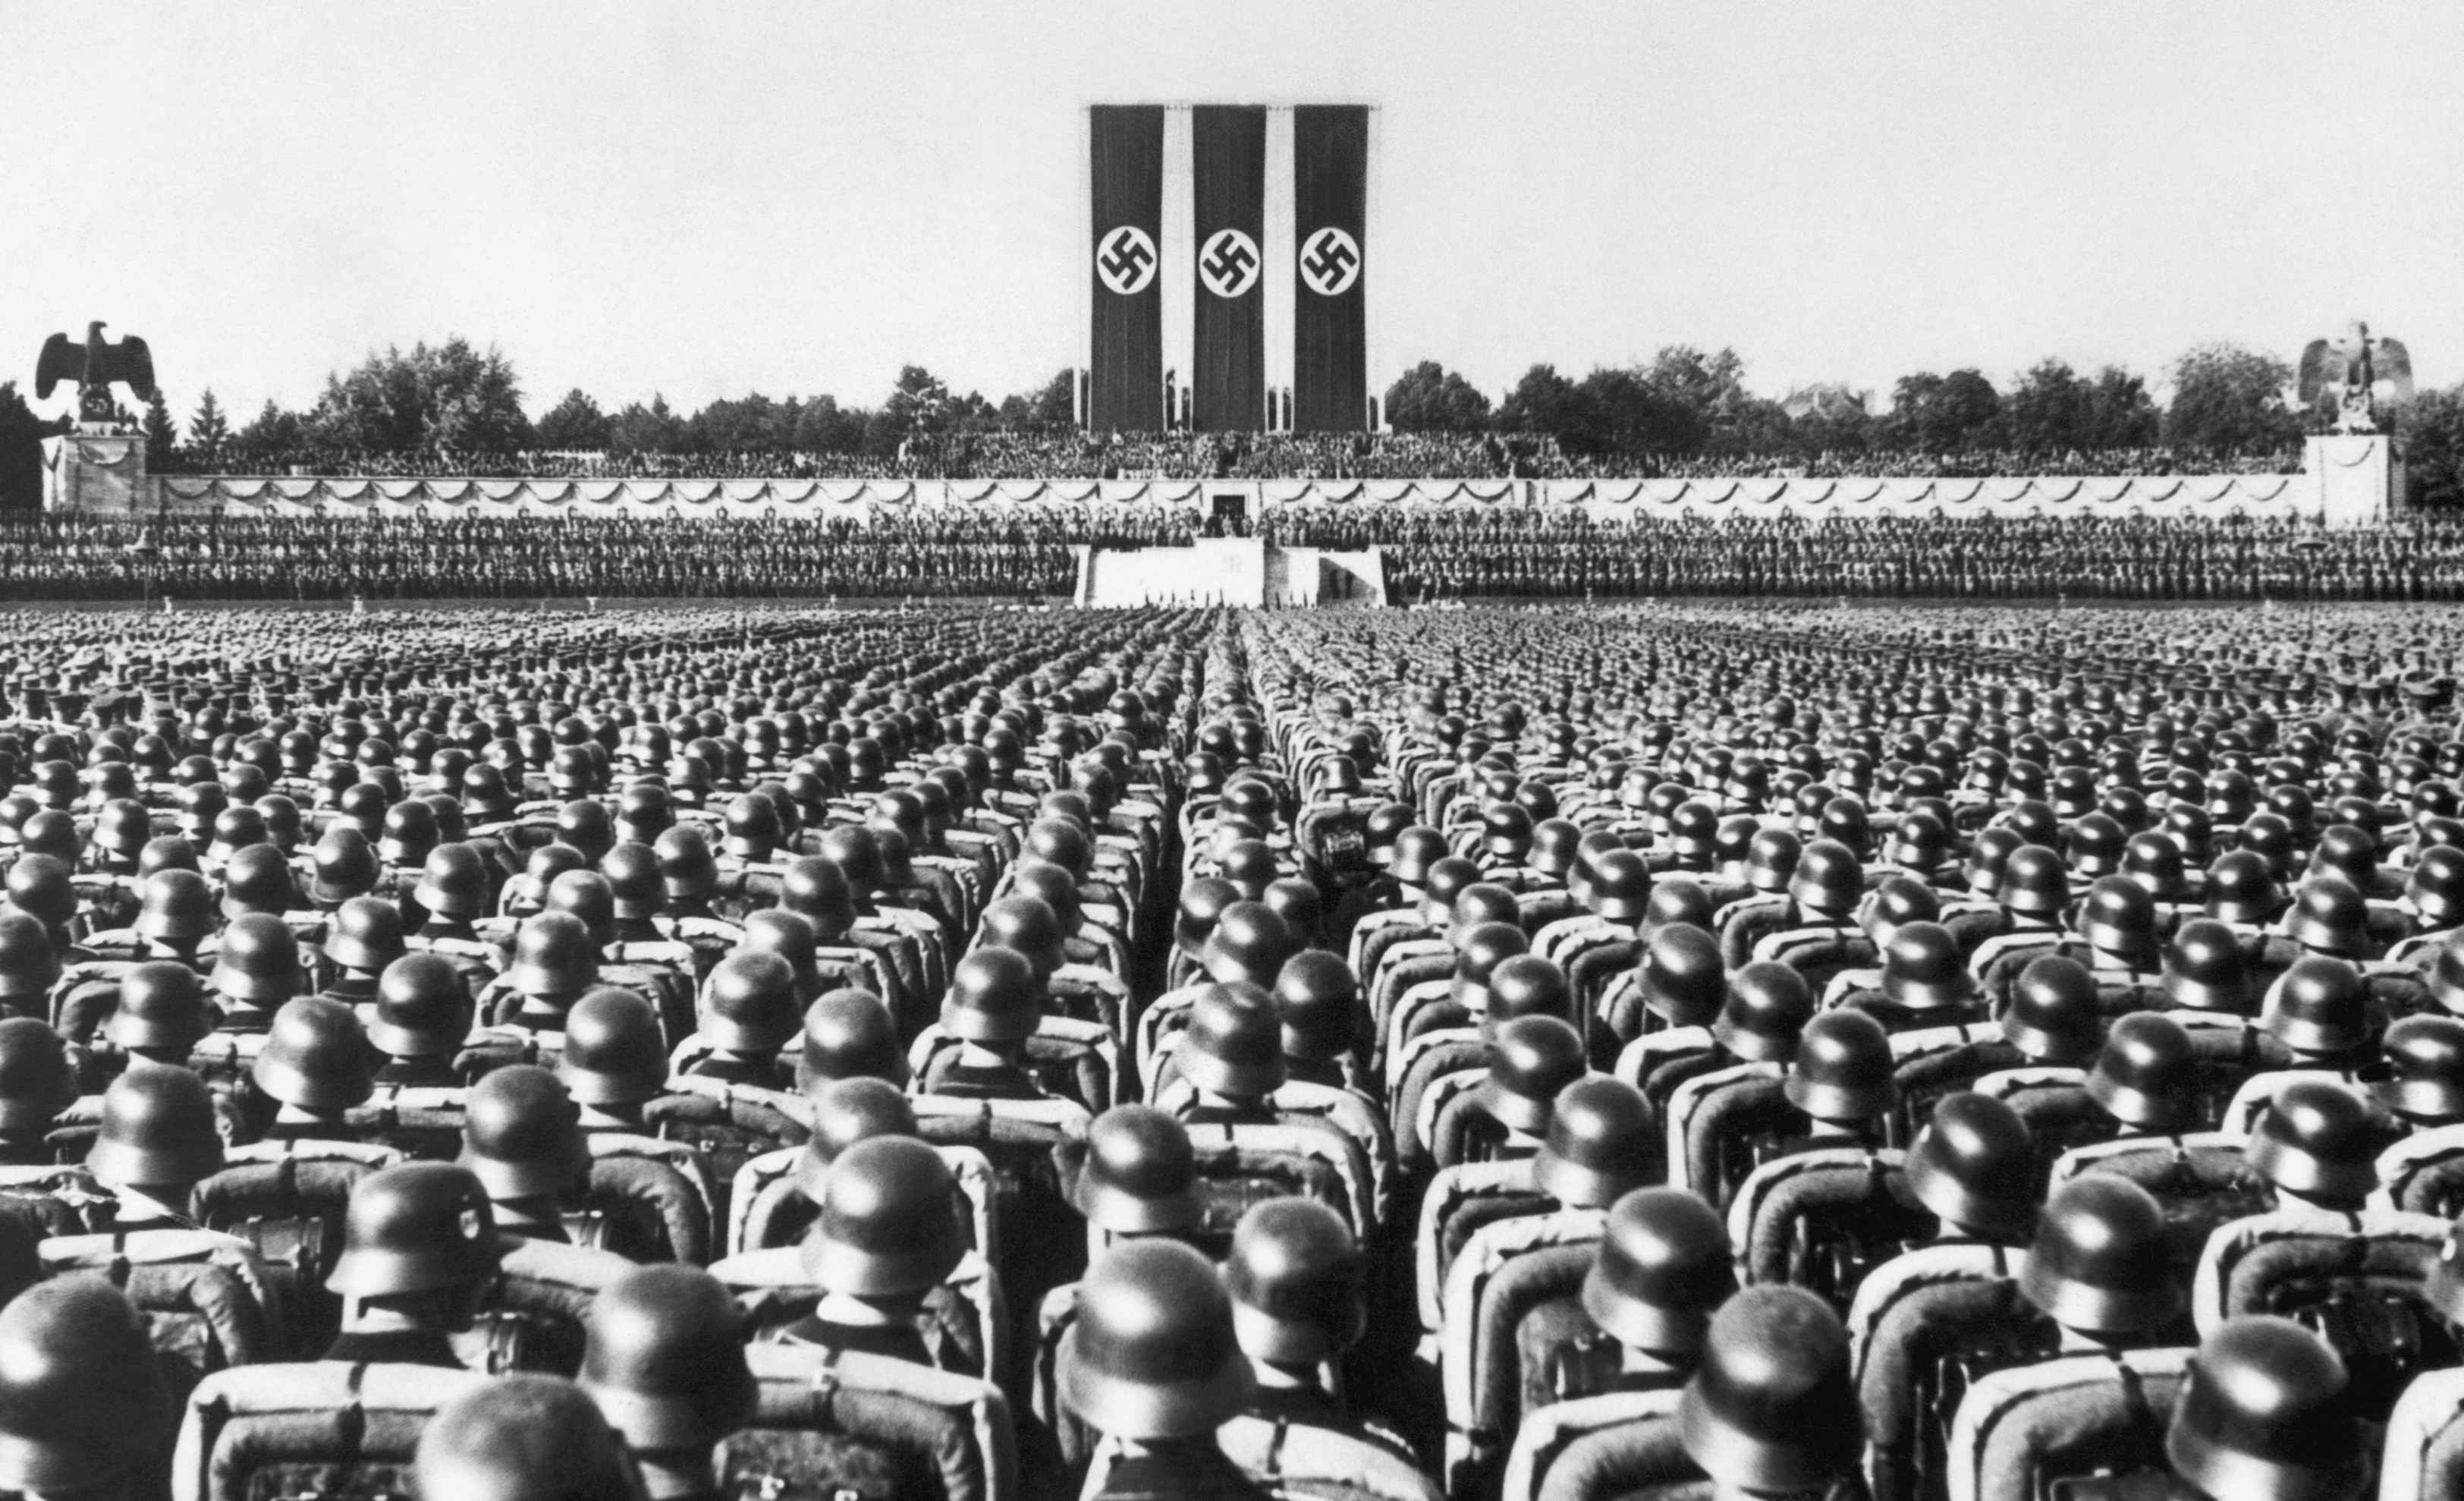 Soldiers at Nazi Party Rally in Nuremberg